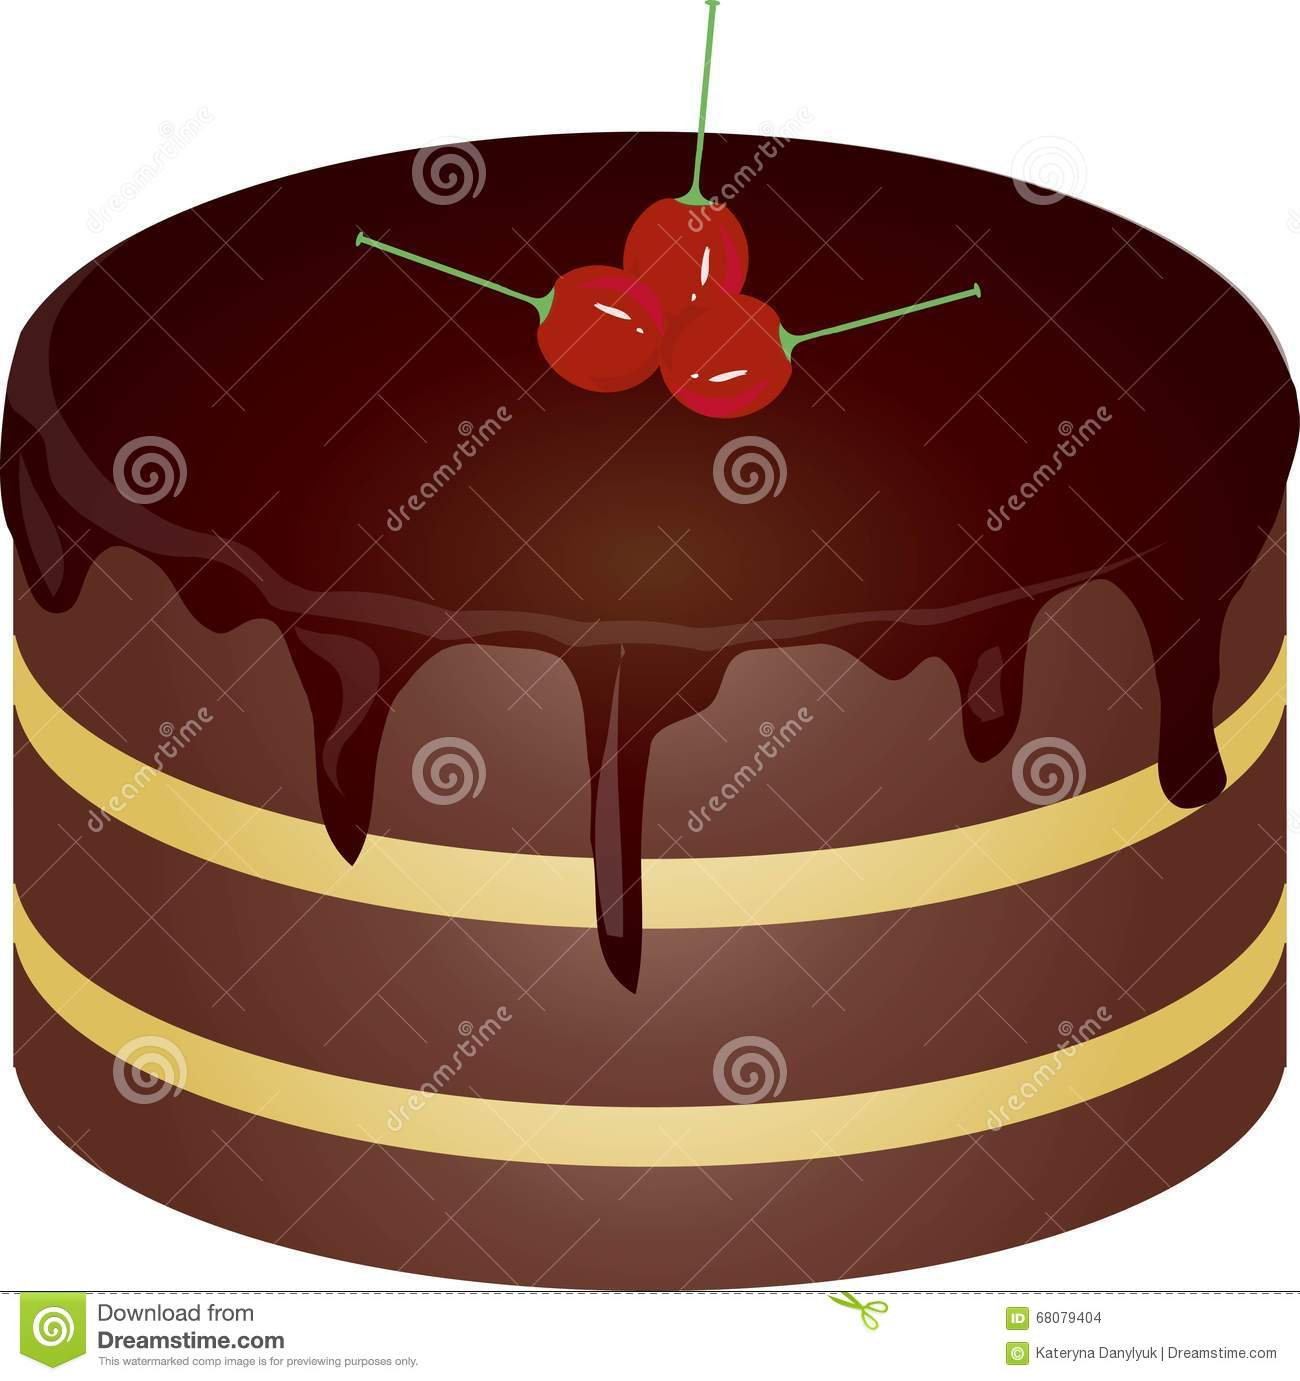 Round Chocolate Cake With Red Cherries On A White Background Design